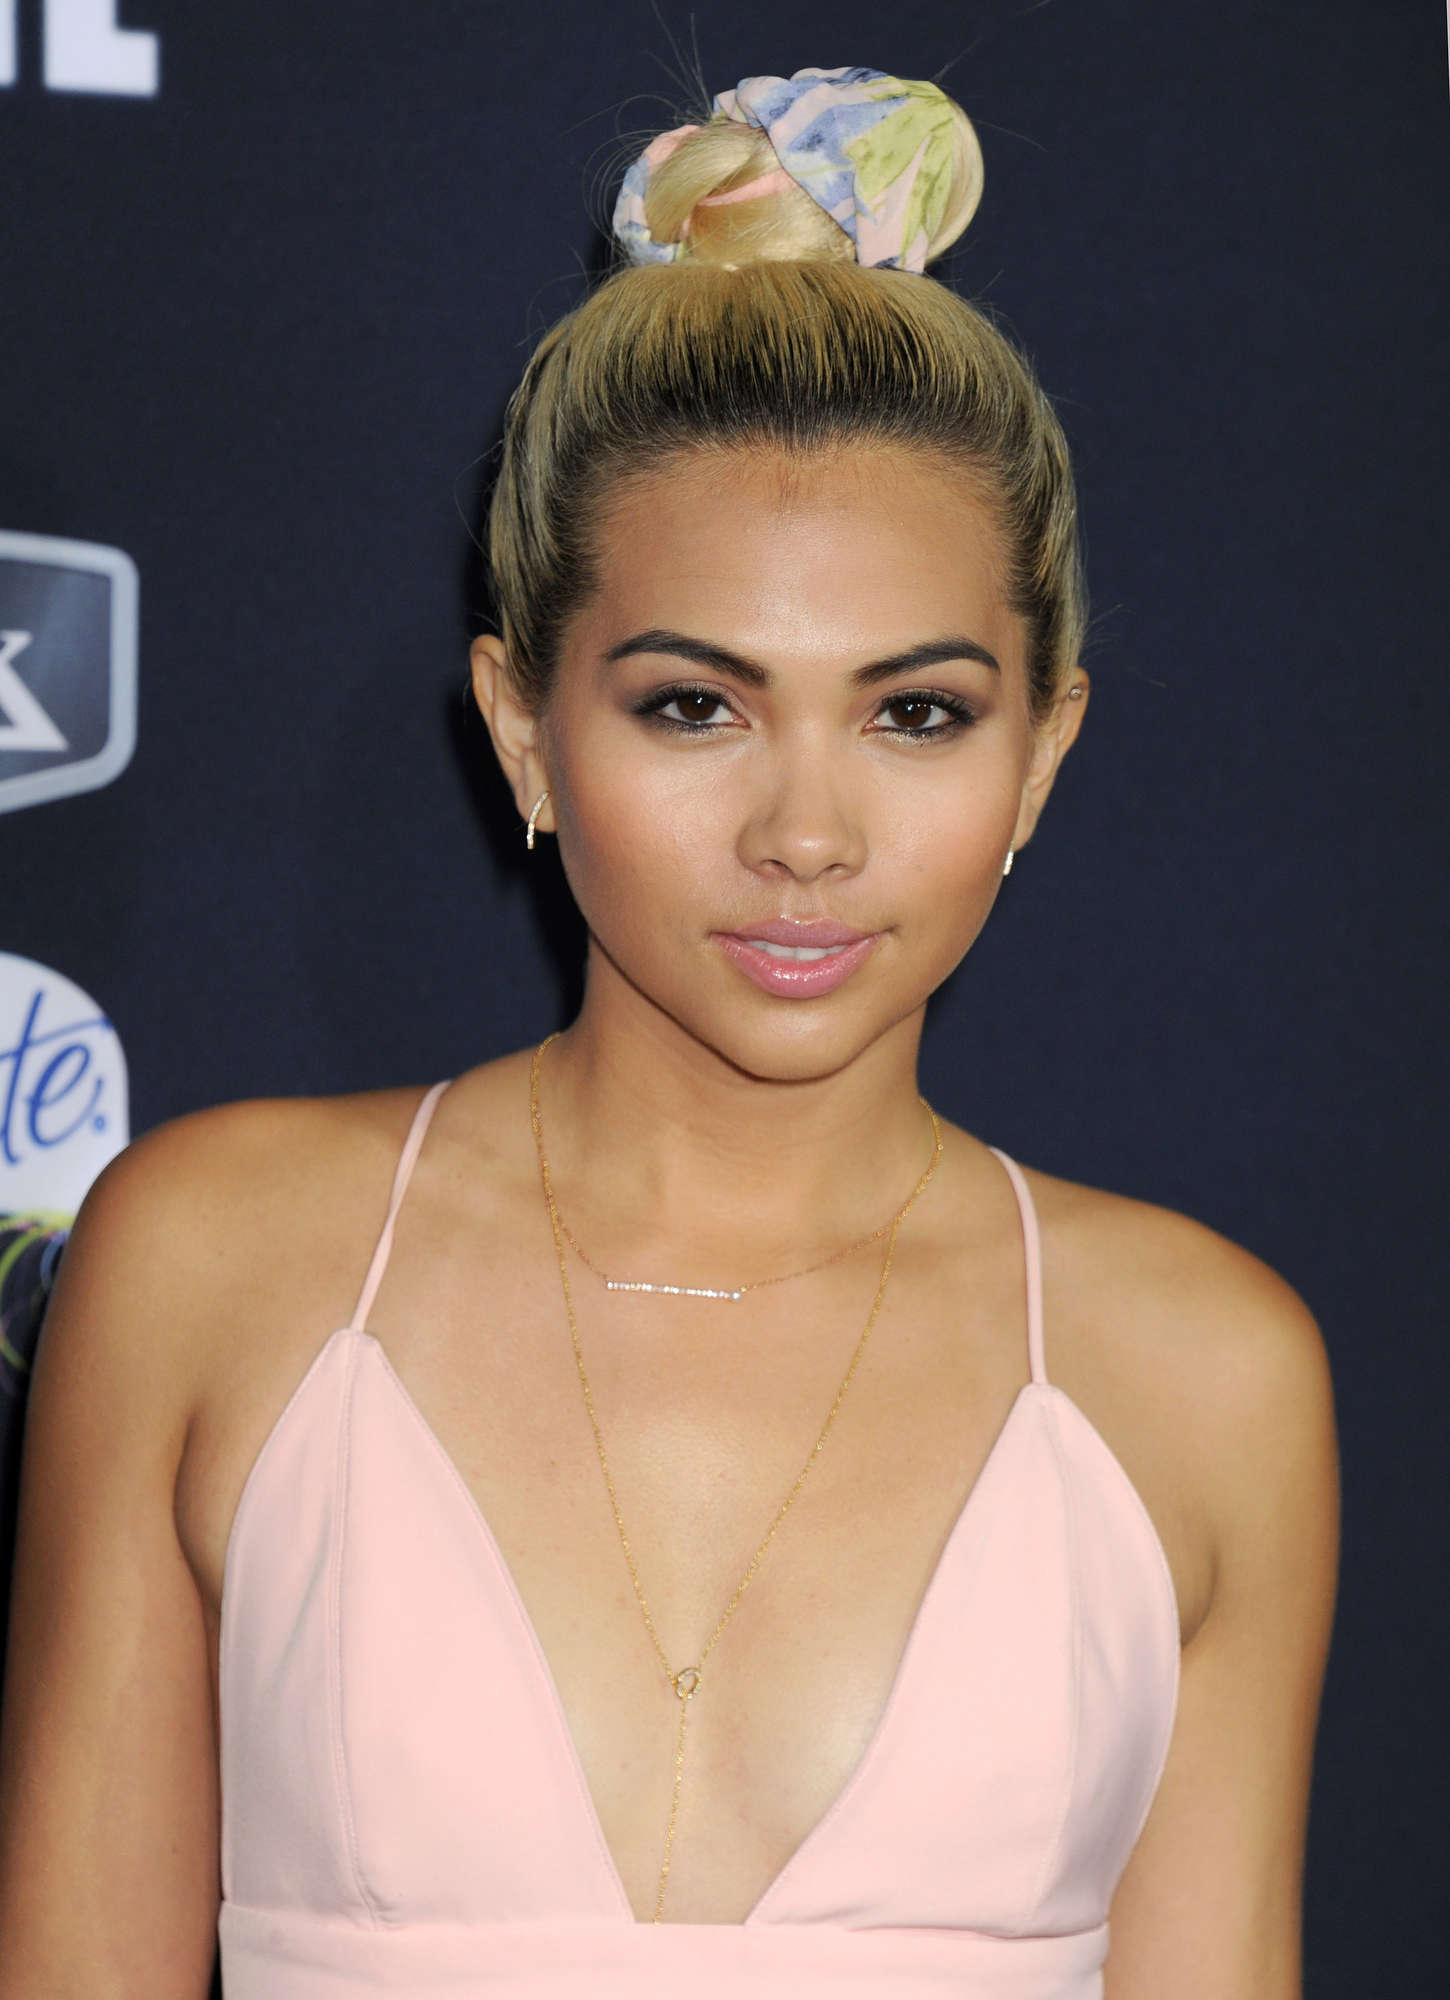 Hayley Kiyoko Pitch Perfect Premiere in Los Angeles